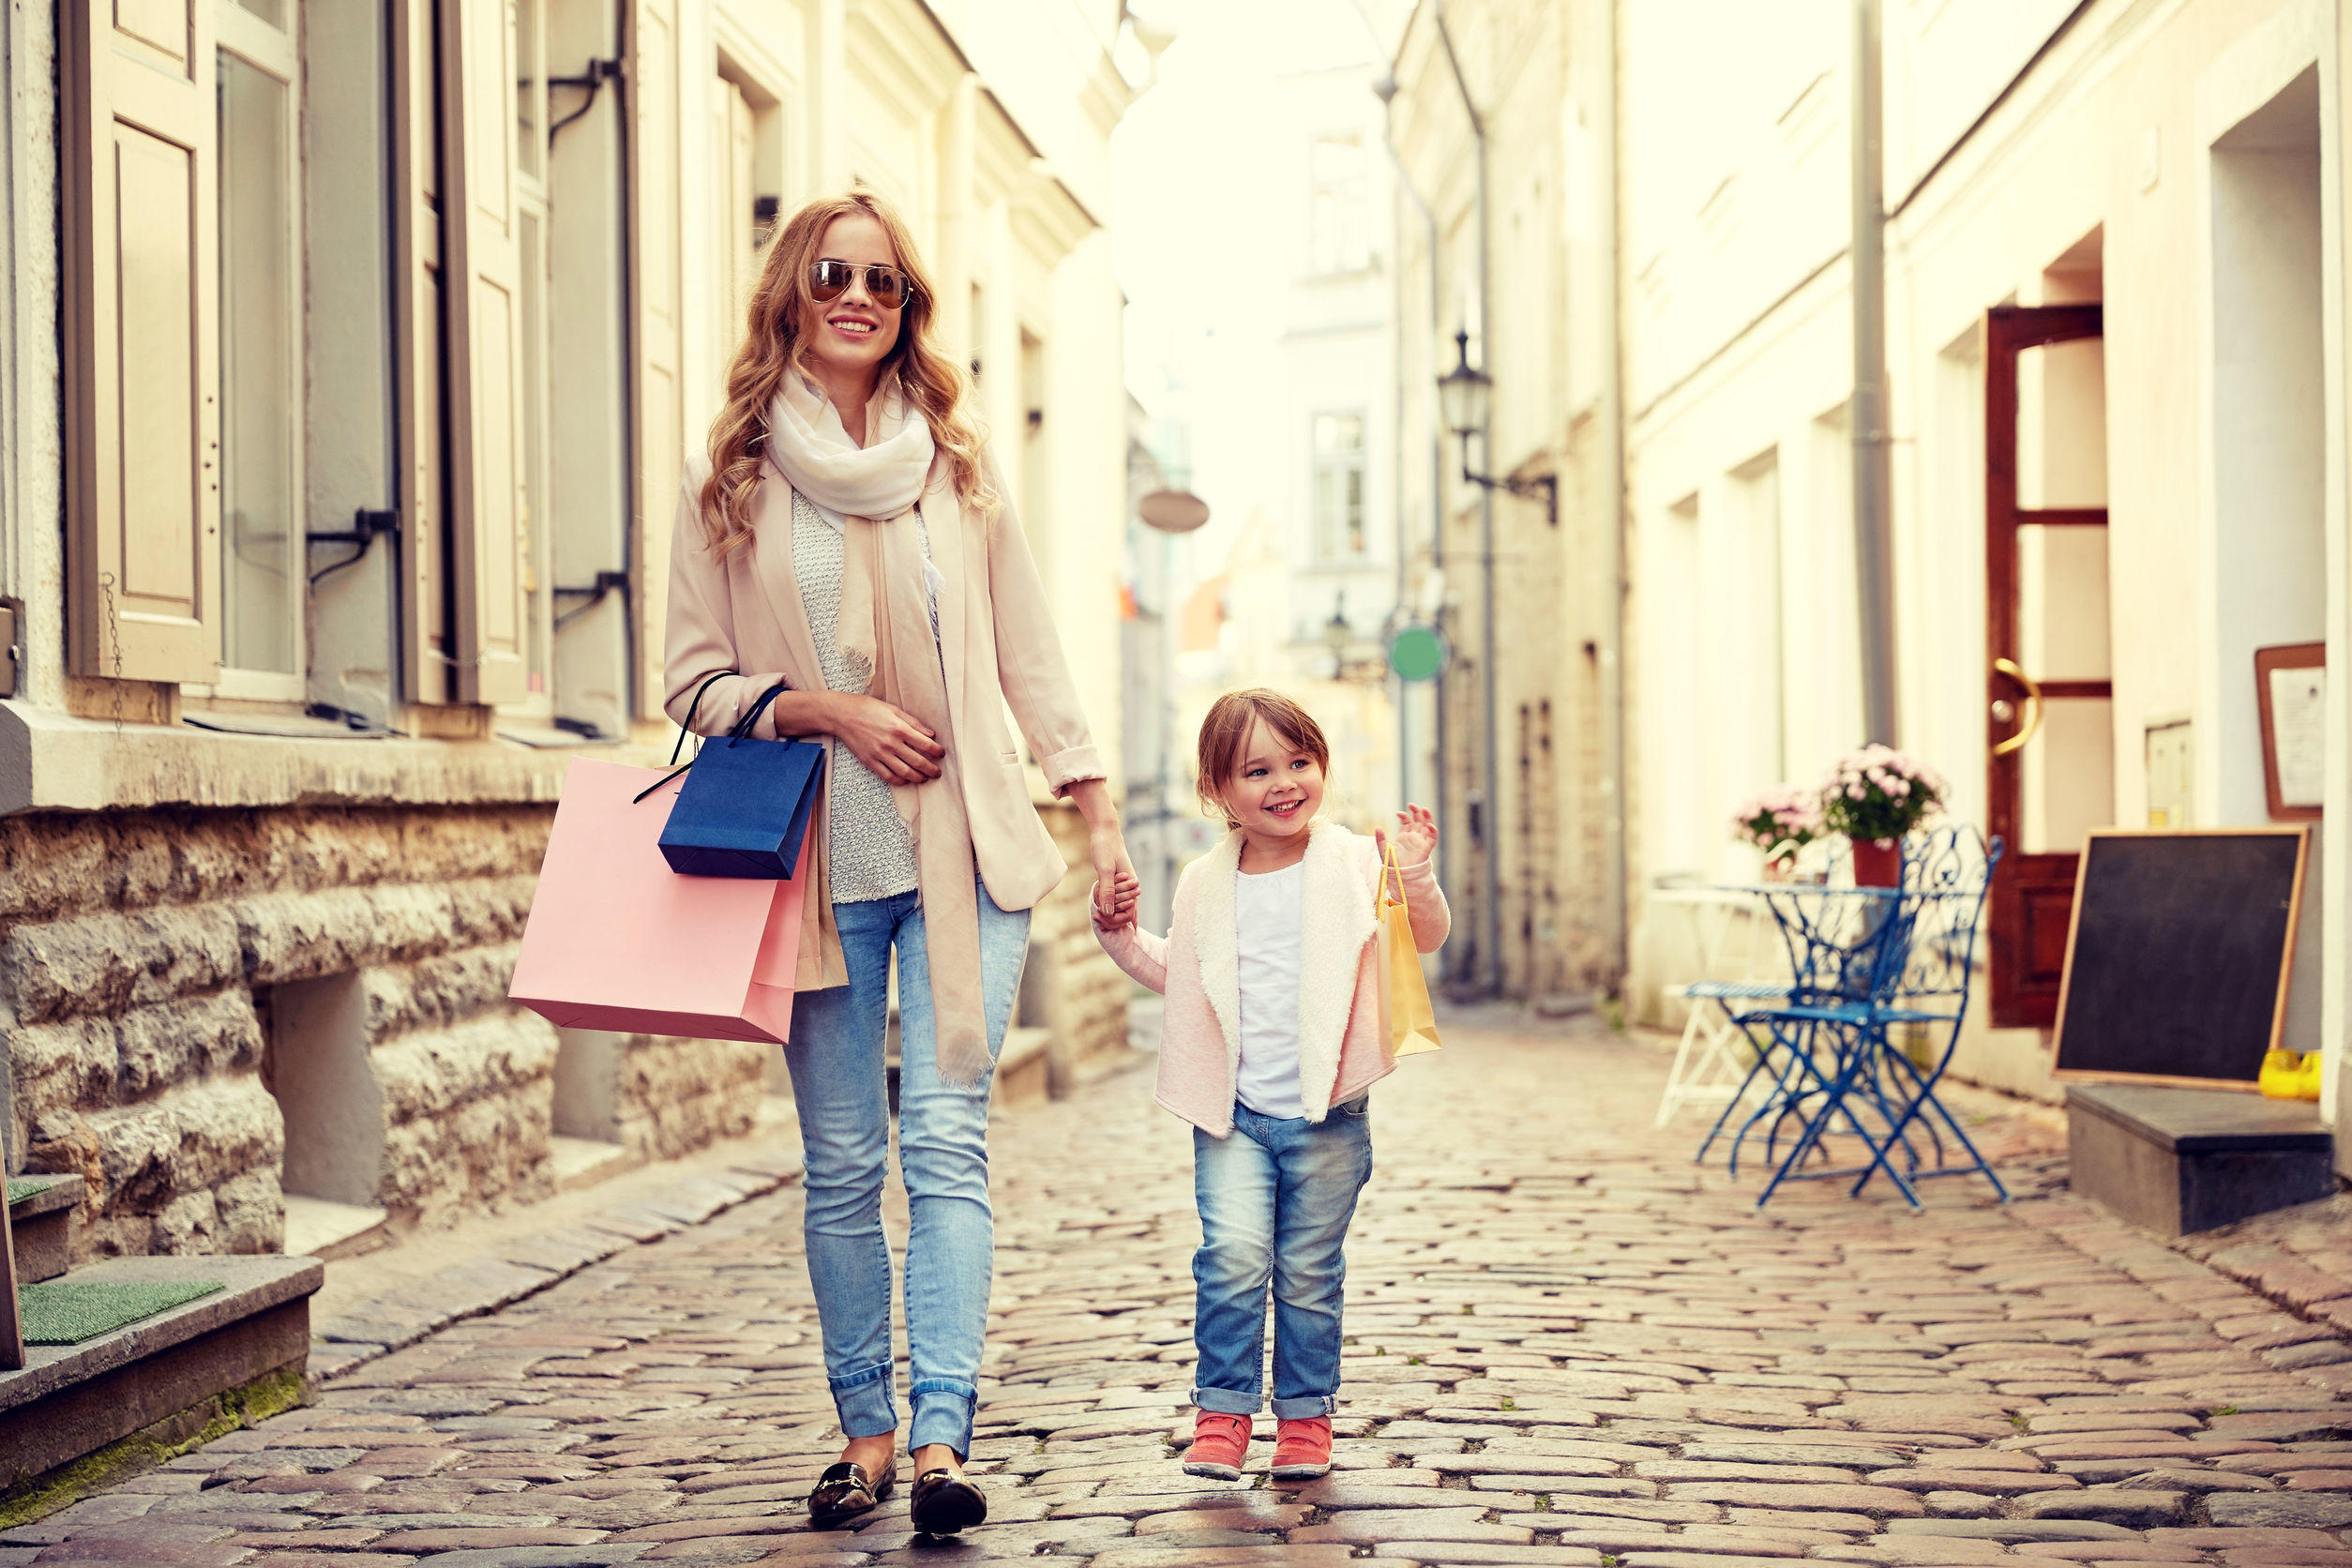 70767464 – happy mother and child with shopping bags in city